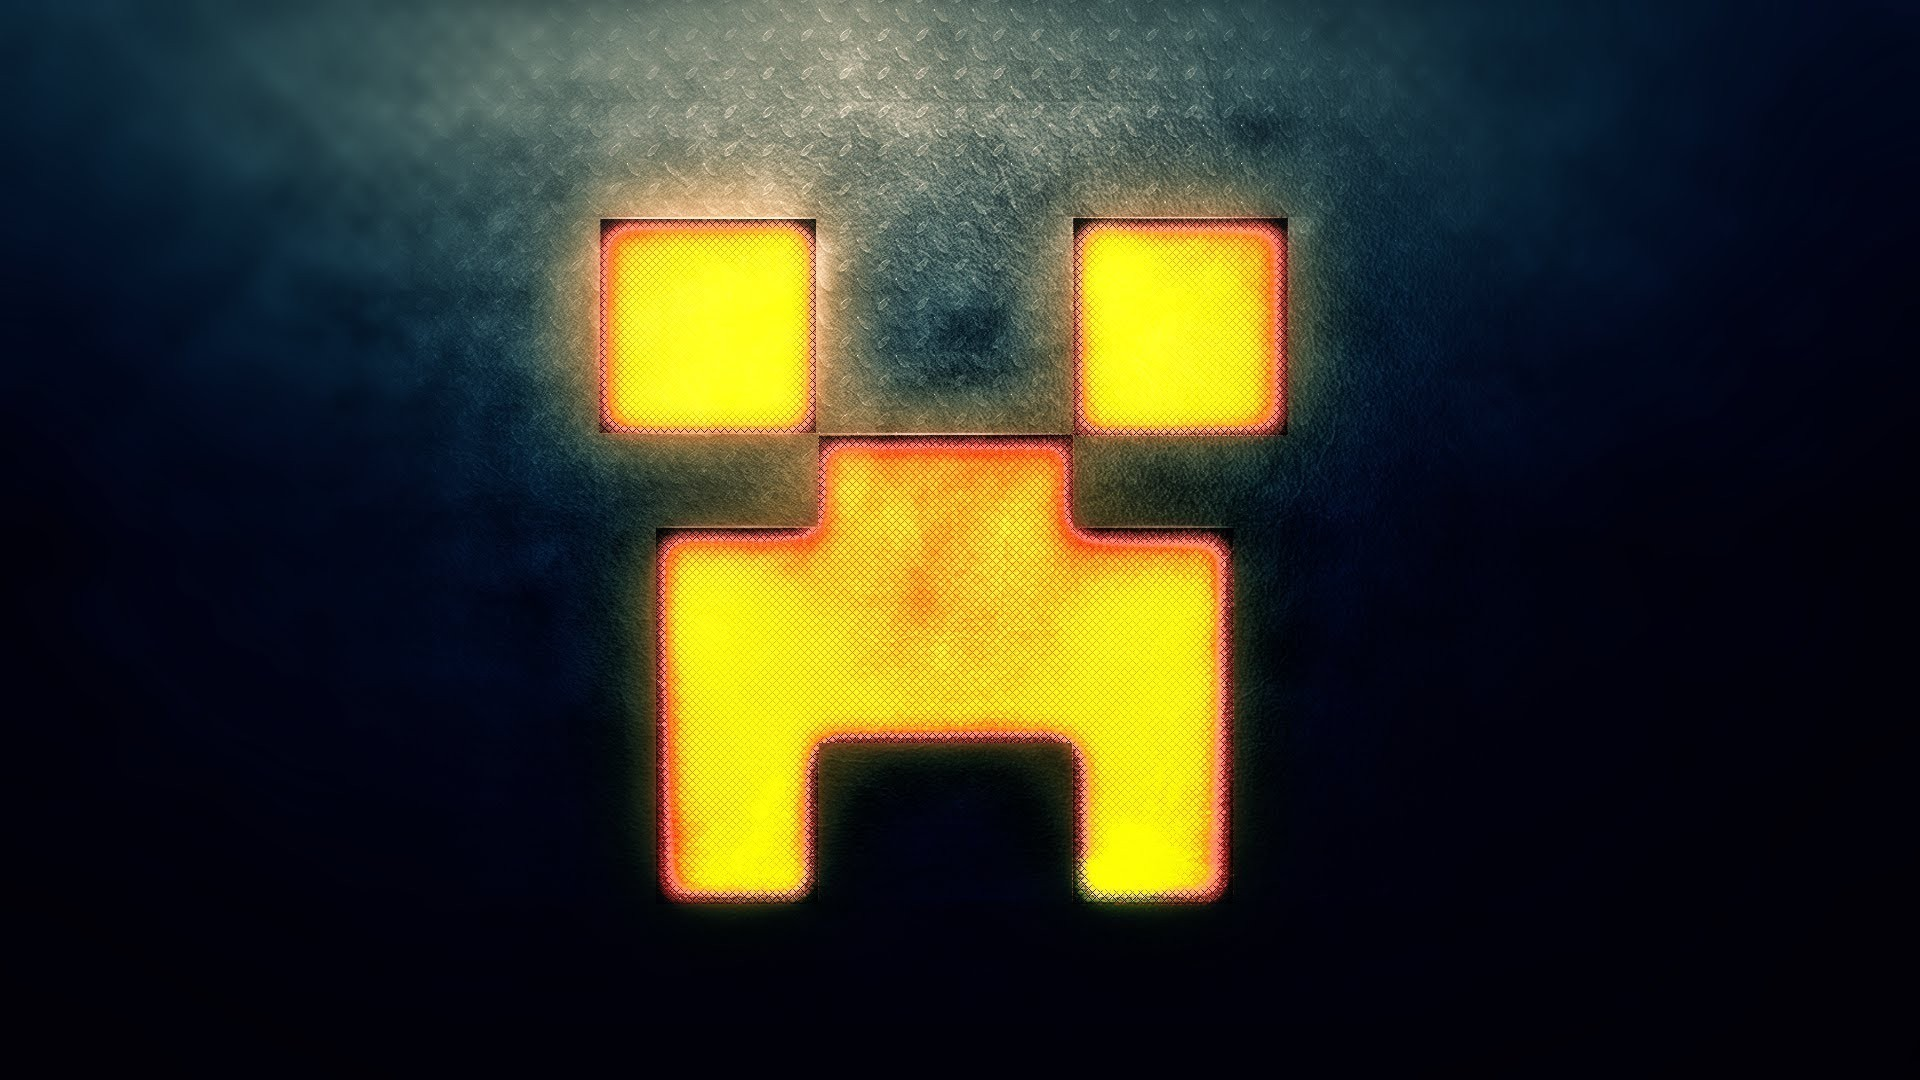 Minecraft Creeper Gesicht Wallpaper